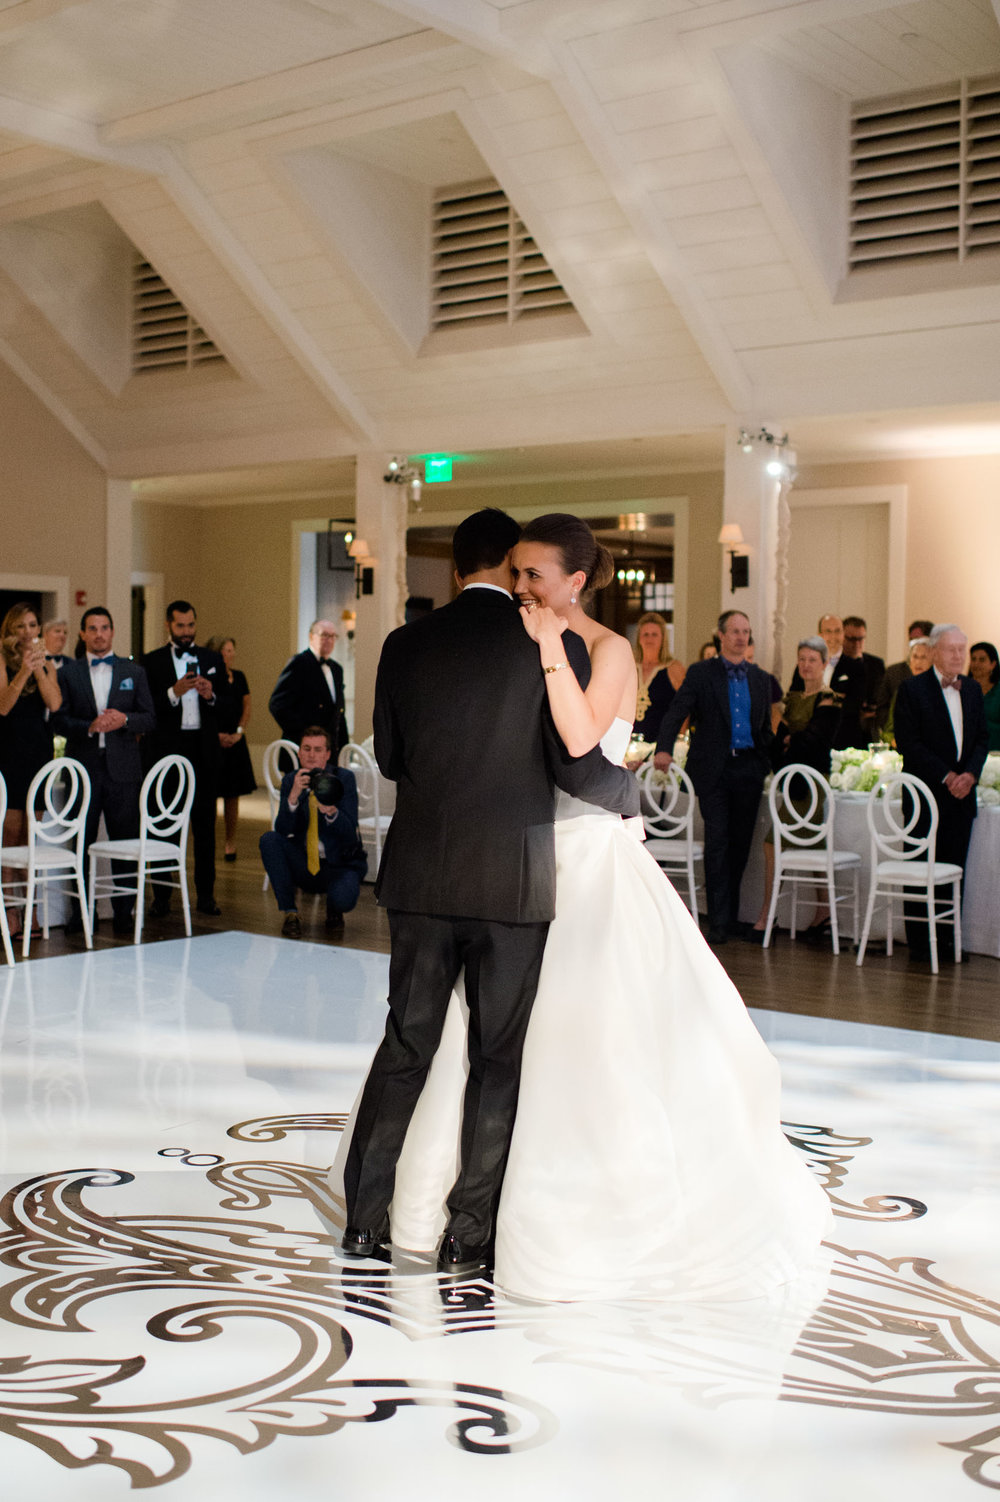 Bride and groom's first dance at Kiawah Island Golf Resort River Course.